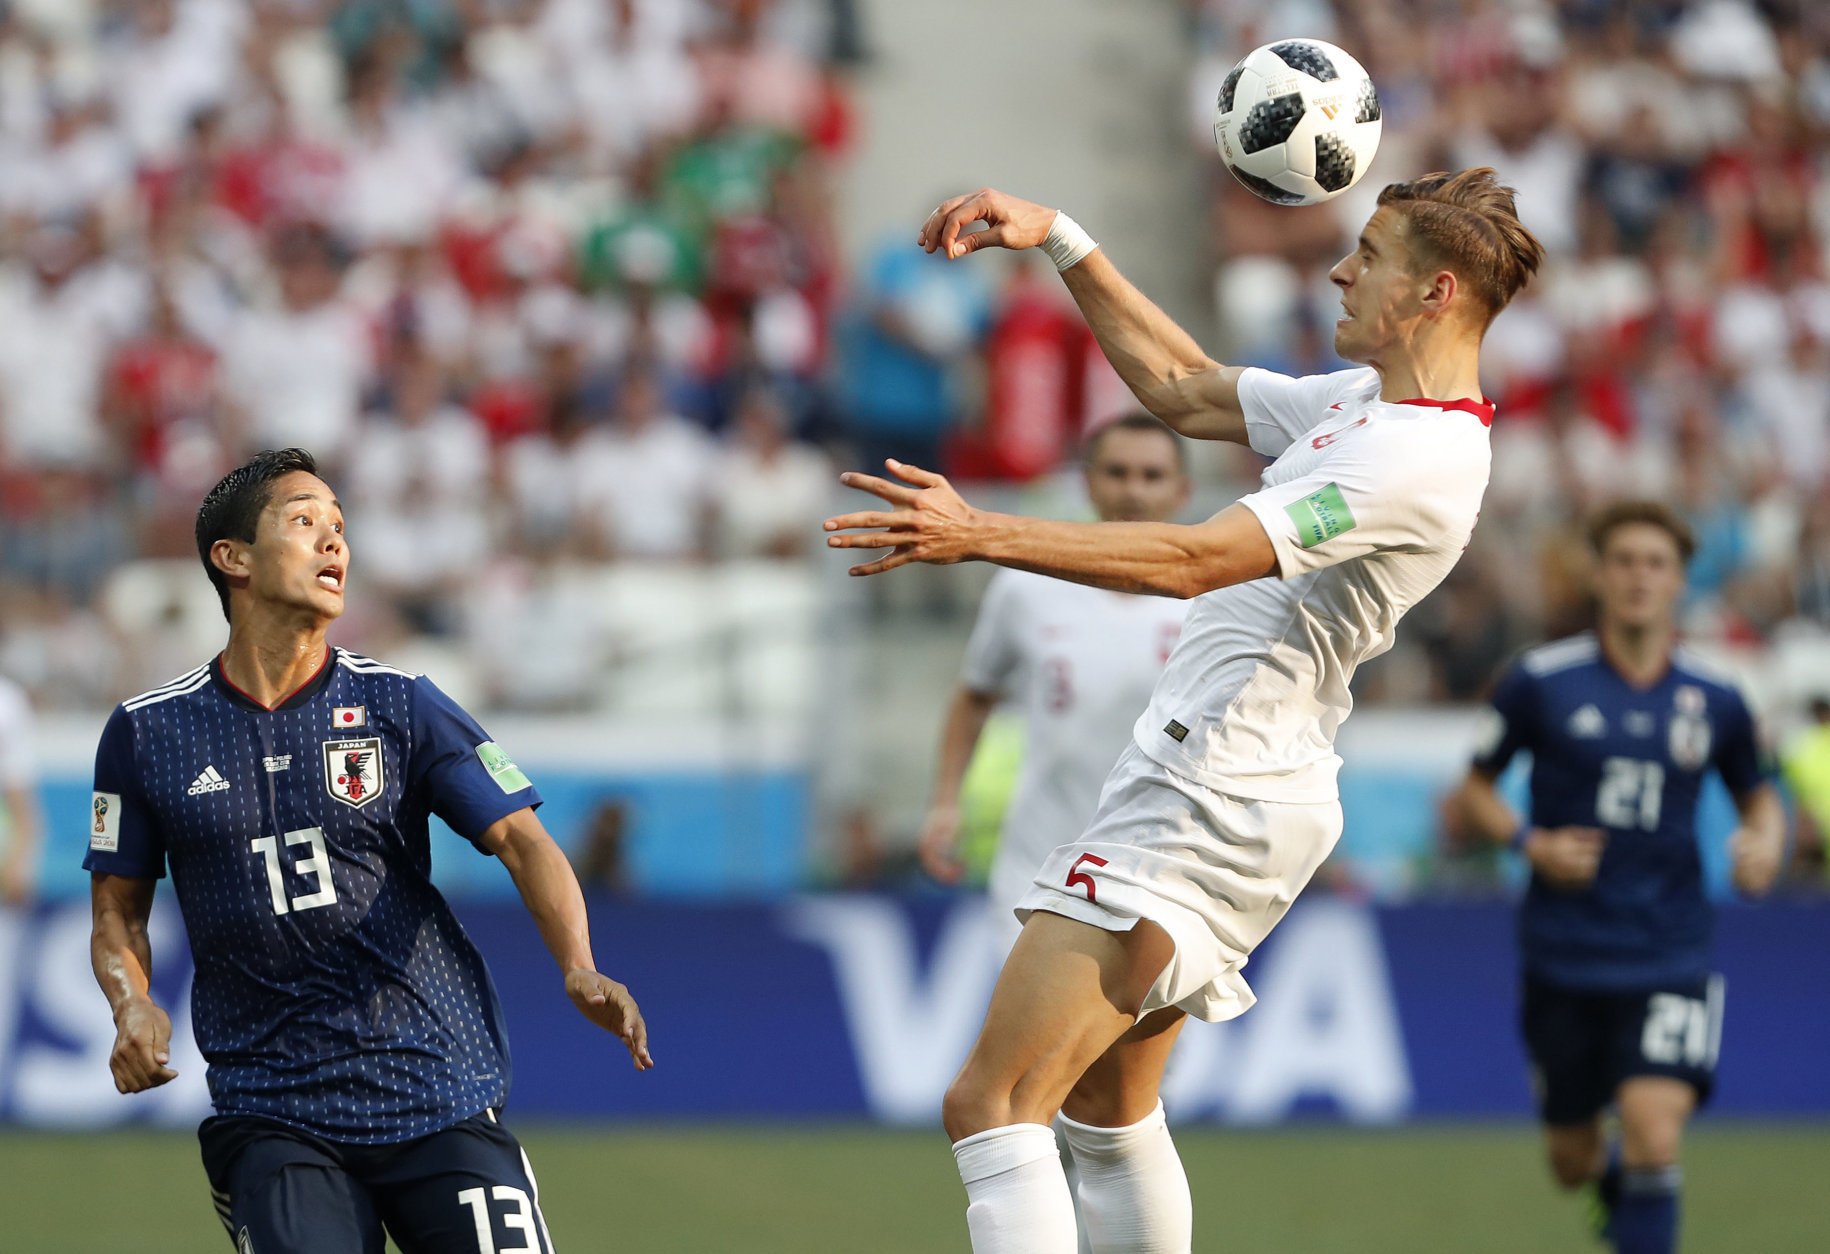 Poland's Jan Bednarek clears the ball from Japan's Yoshinori Muto during the group H match between Japan and Poland at the 2018 soccer World Cup at the Volgograd Arena in Volgograd, Russia, Thursday, June 28, 2018. (AP Photo/Darko Vojinovic)